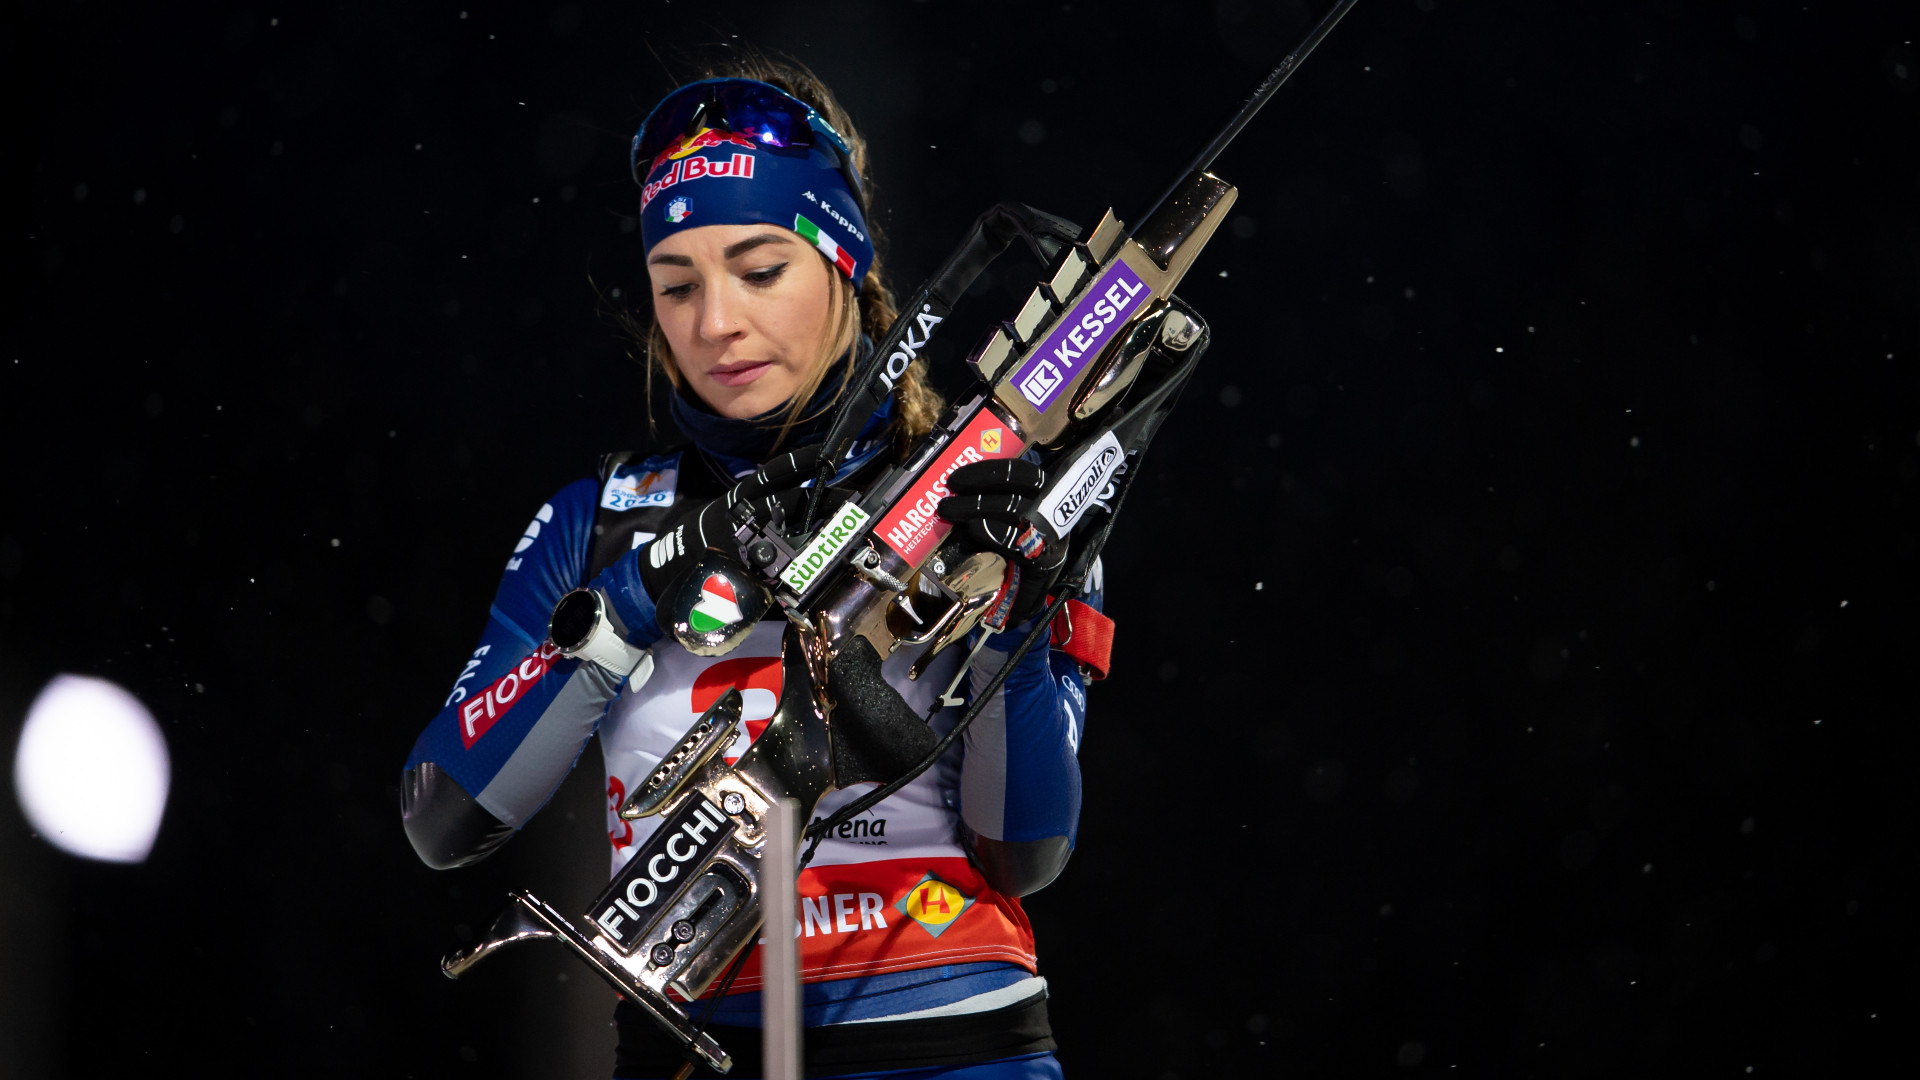 Dorothea Wierer_Biathlon_28122020_Getty Images_Daniel Kopatsch